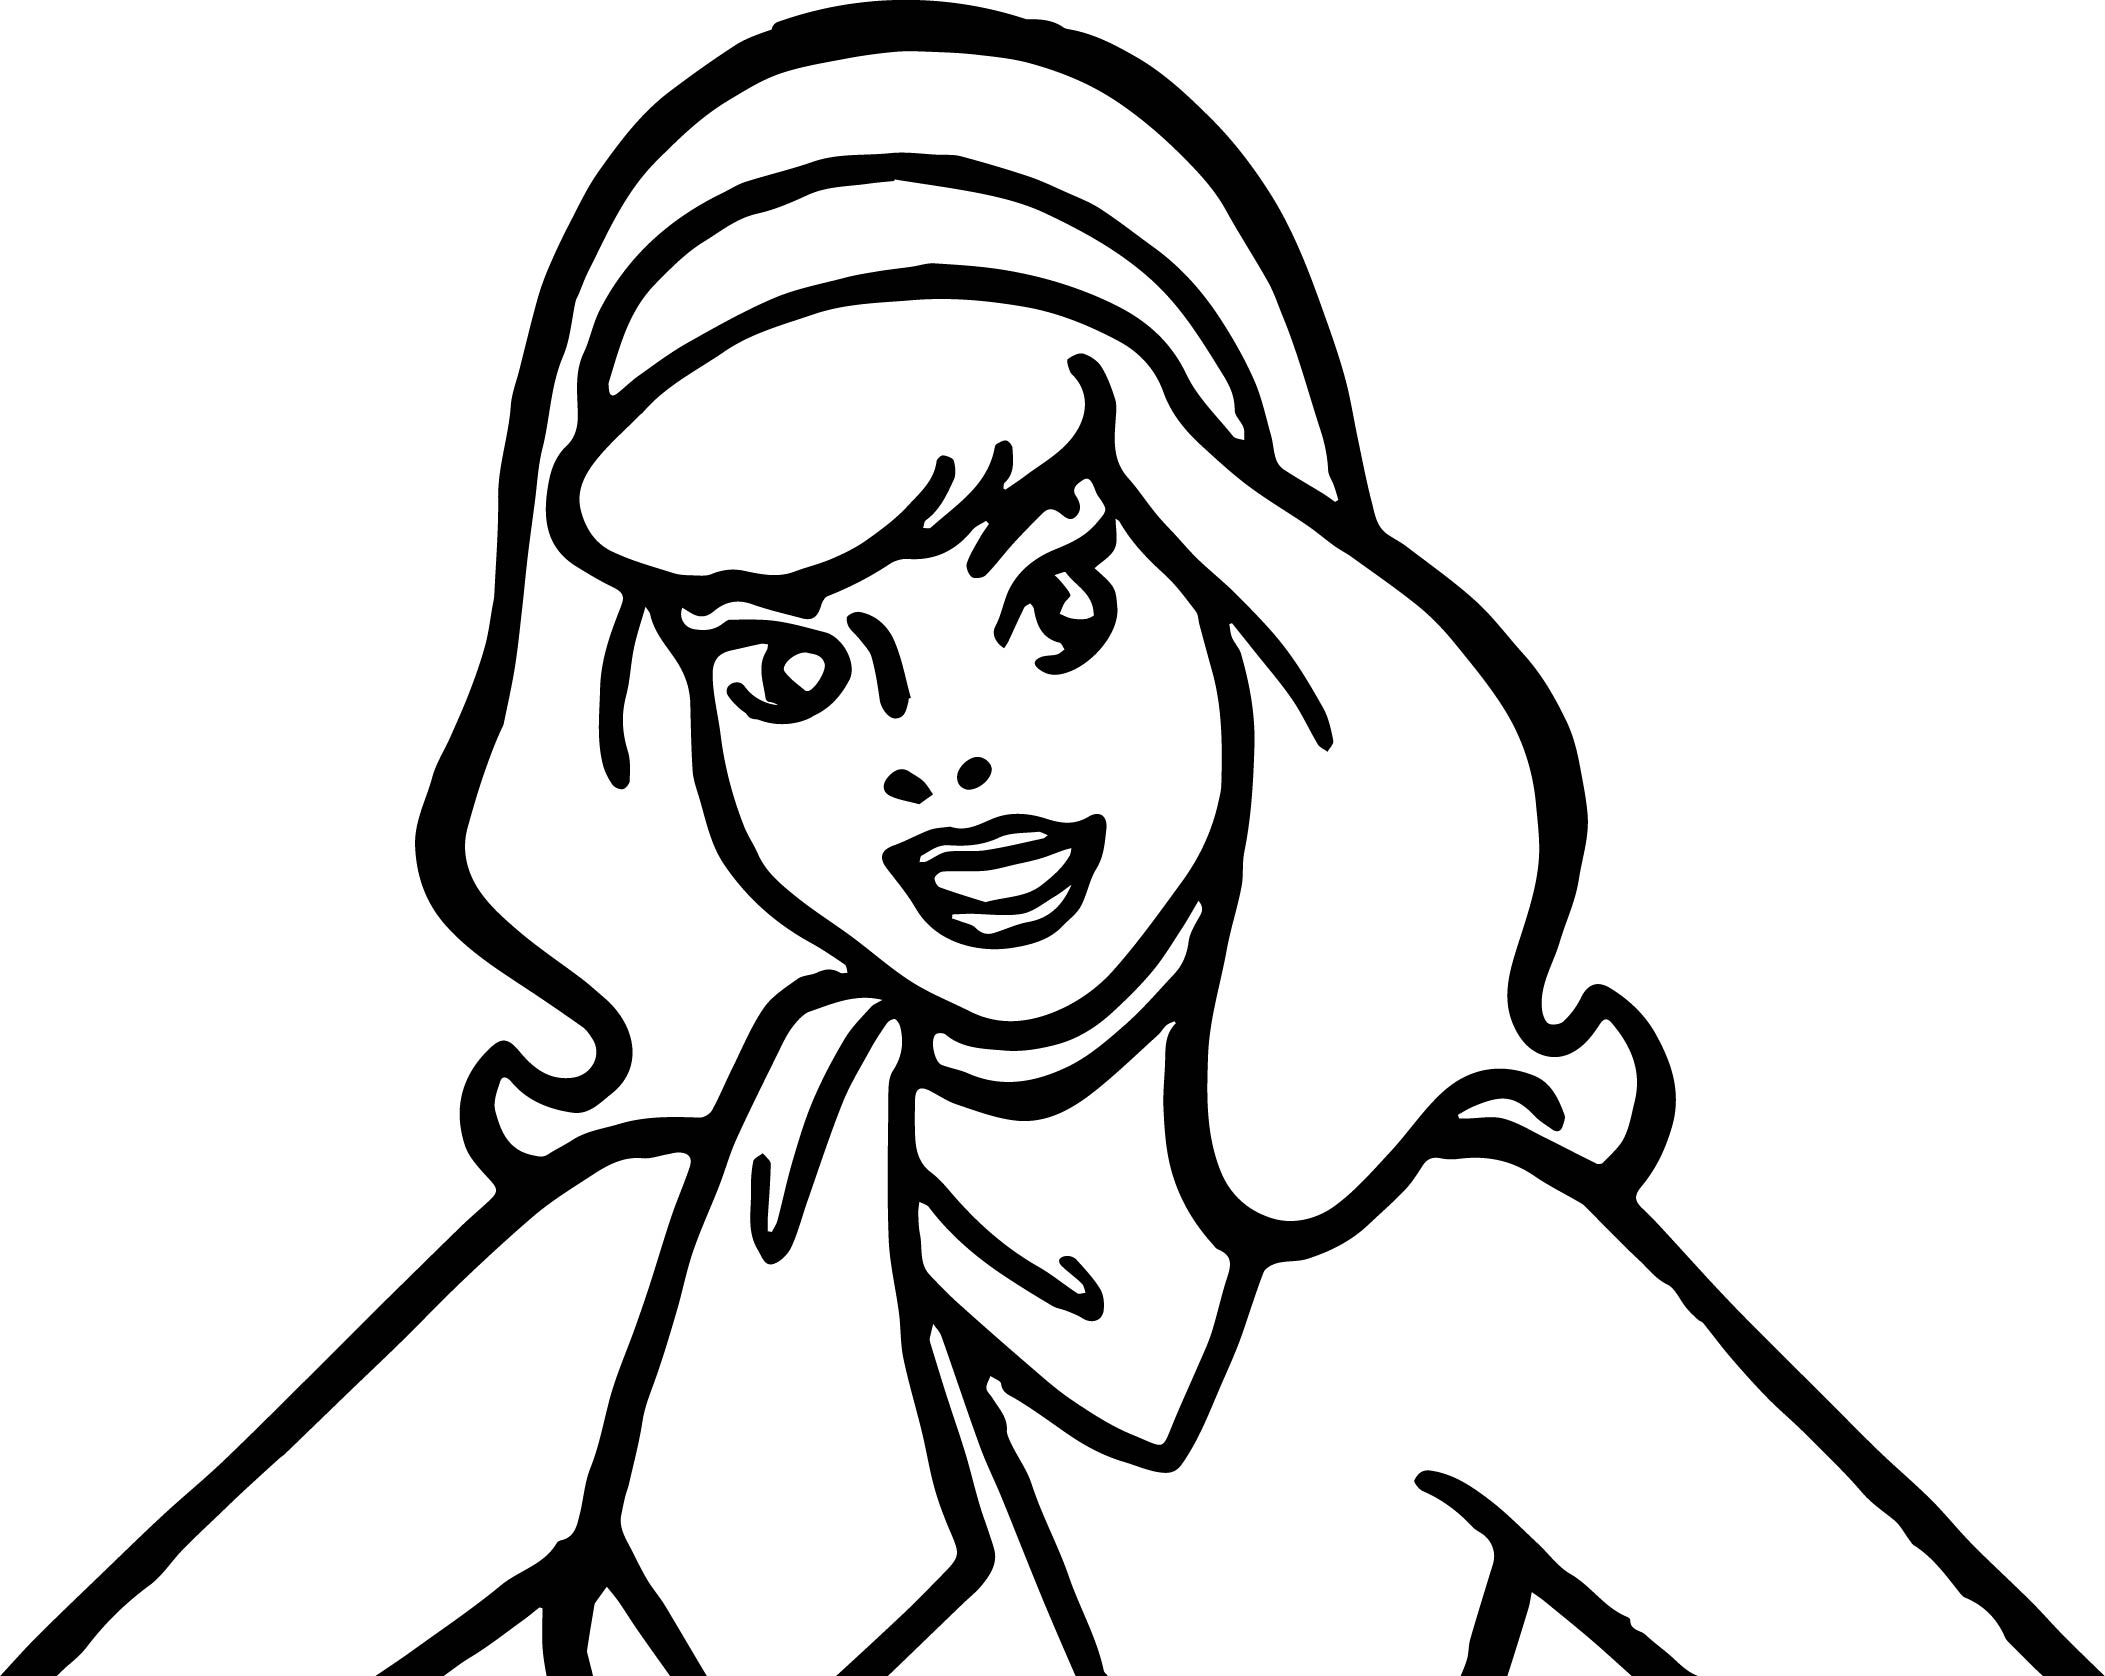 Make Coloring Pages From Photos At Getcolorings